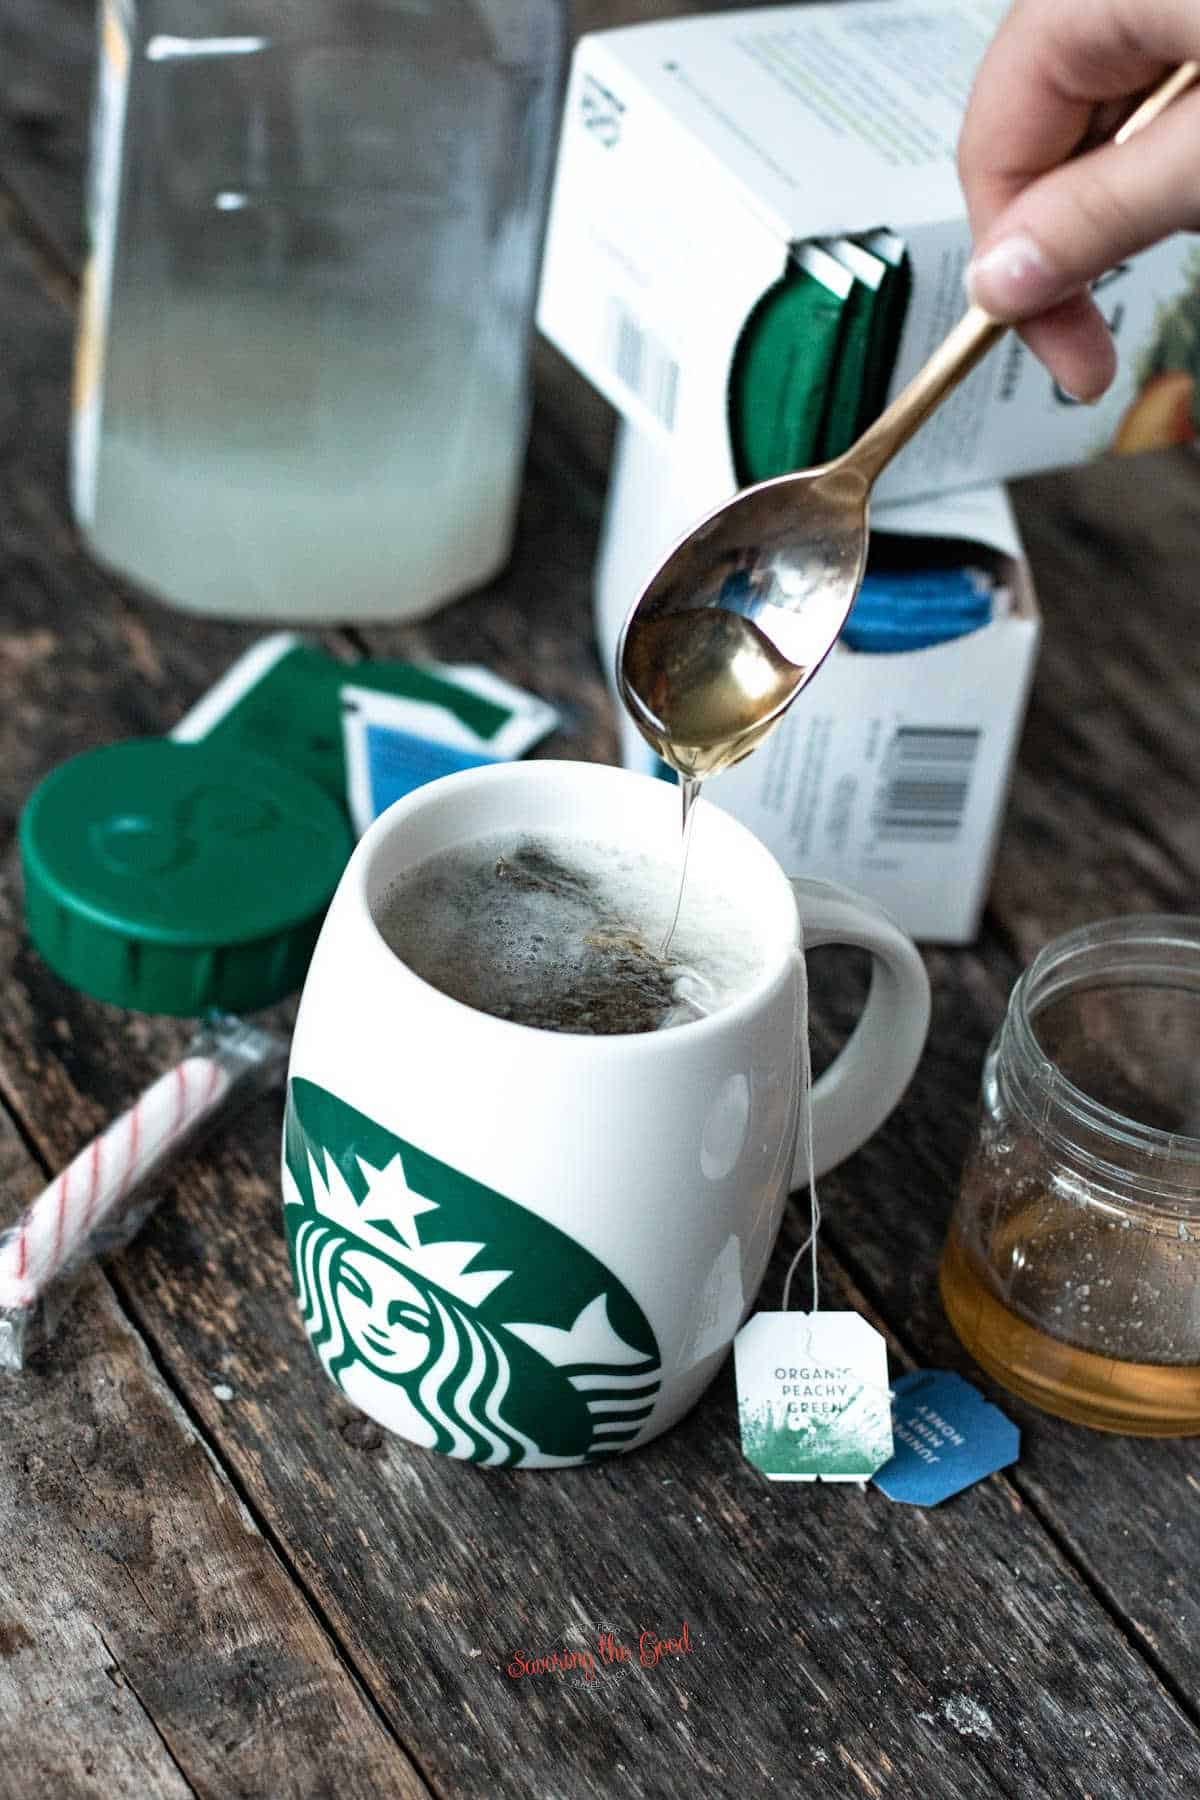 hand spooning honey into tea with starbucks medicine ball ingredients in the background